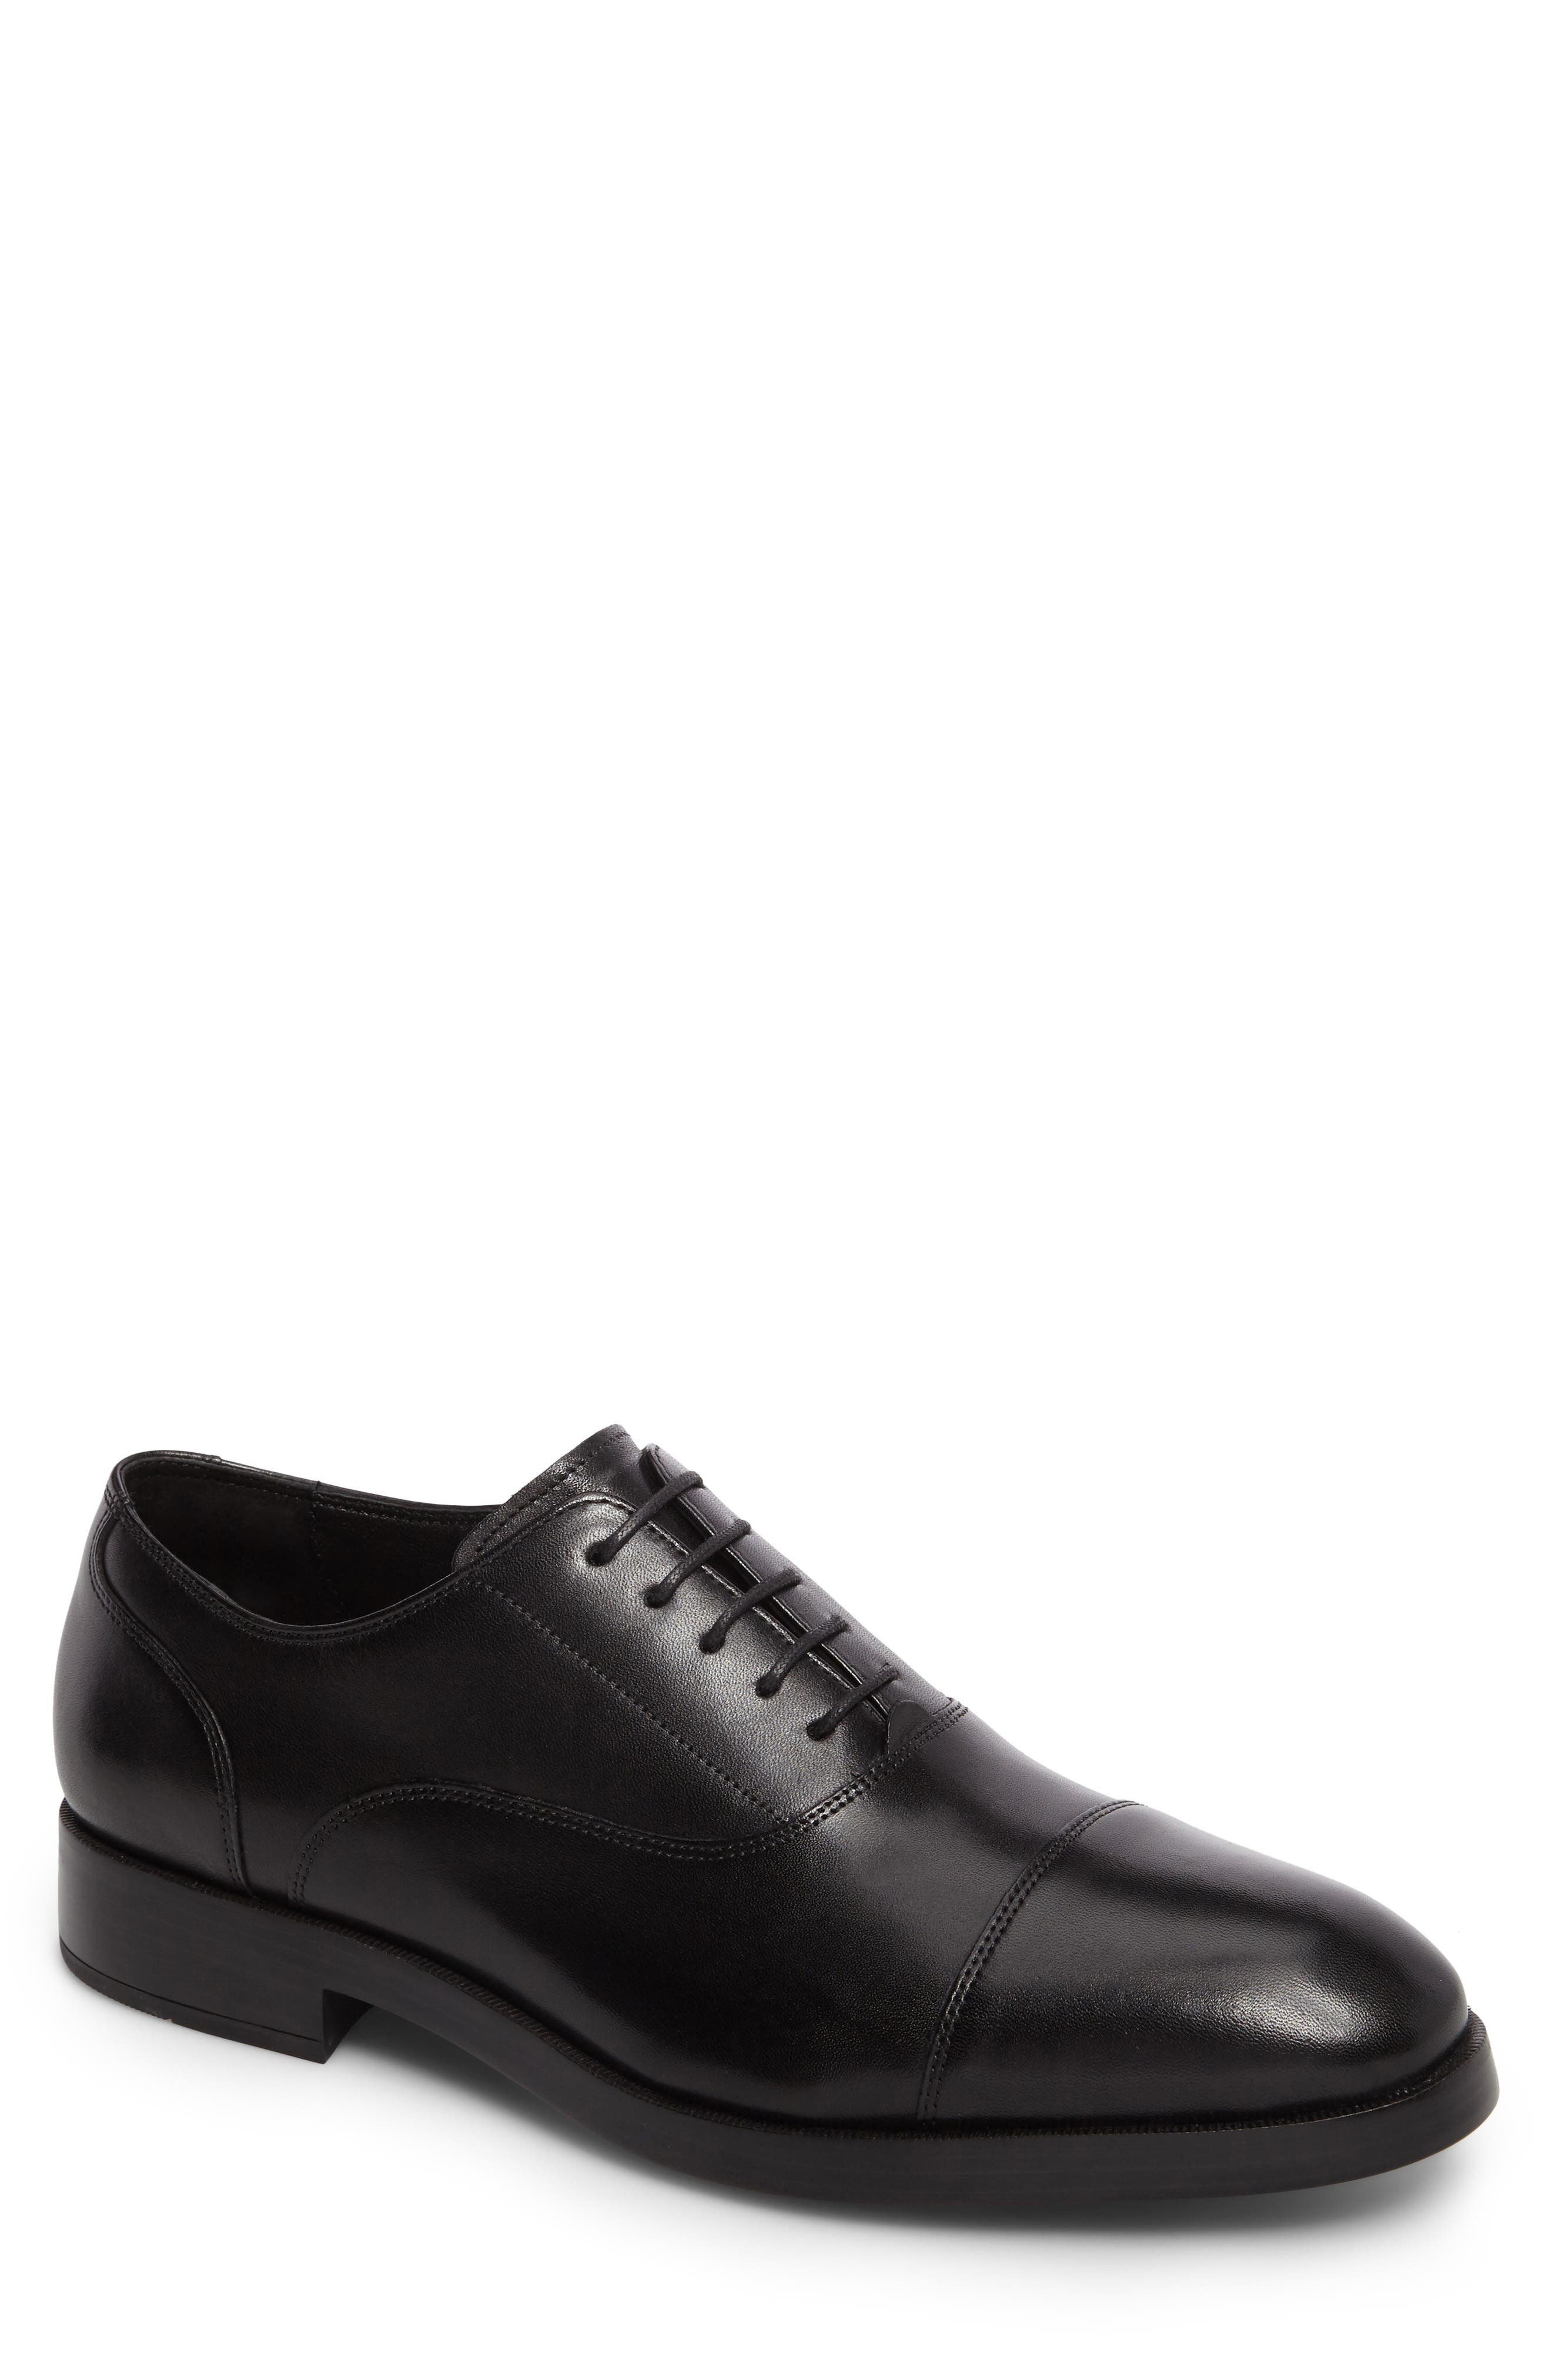 COLE HAAN, Harrison Grand Cap Toe Oxford, Main thumbnail 1, color, BLACK/ BLACK LEATHER